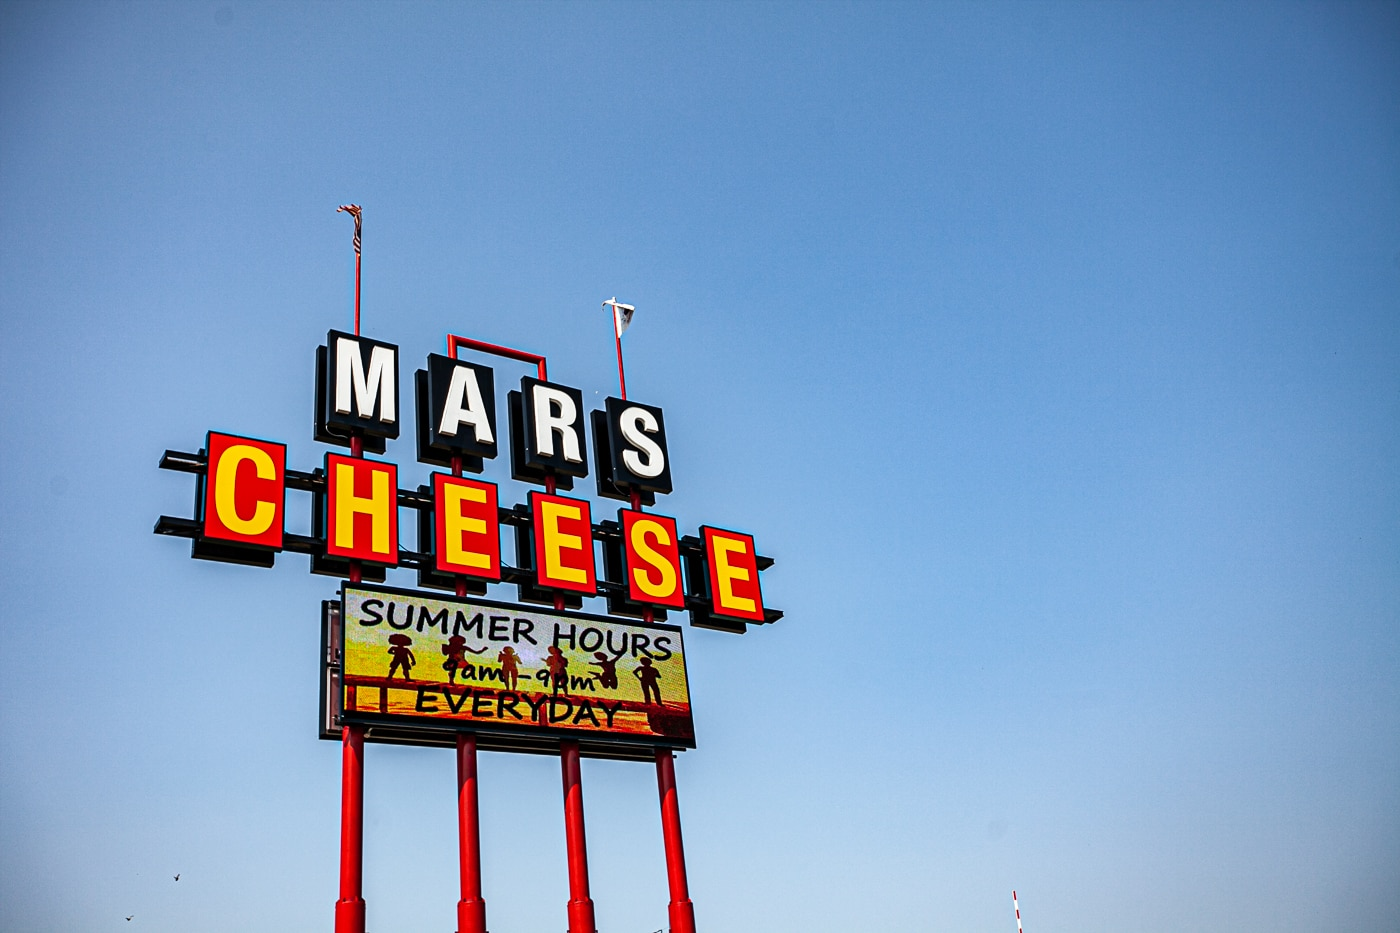 Giant sign for Mars Cheese Castle in Kenosha, Wisconsin off I-94